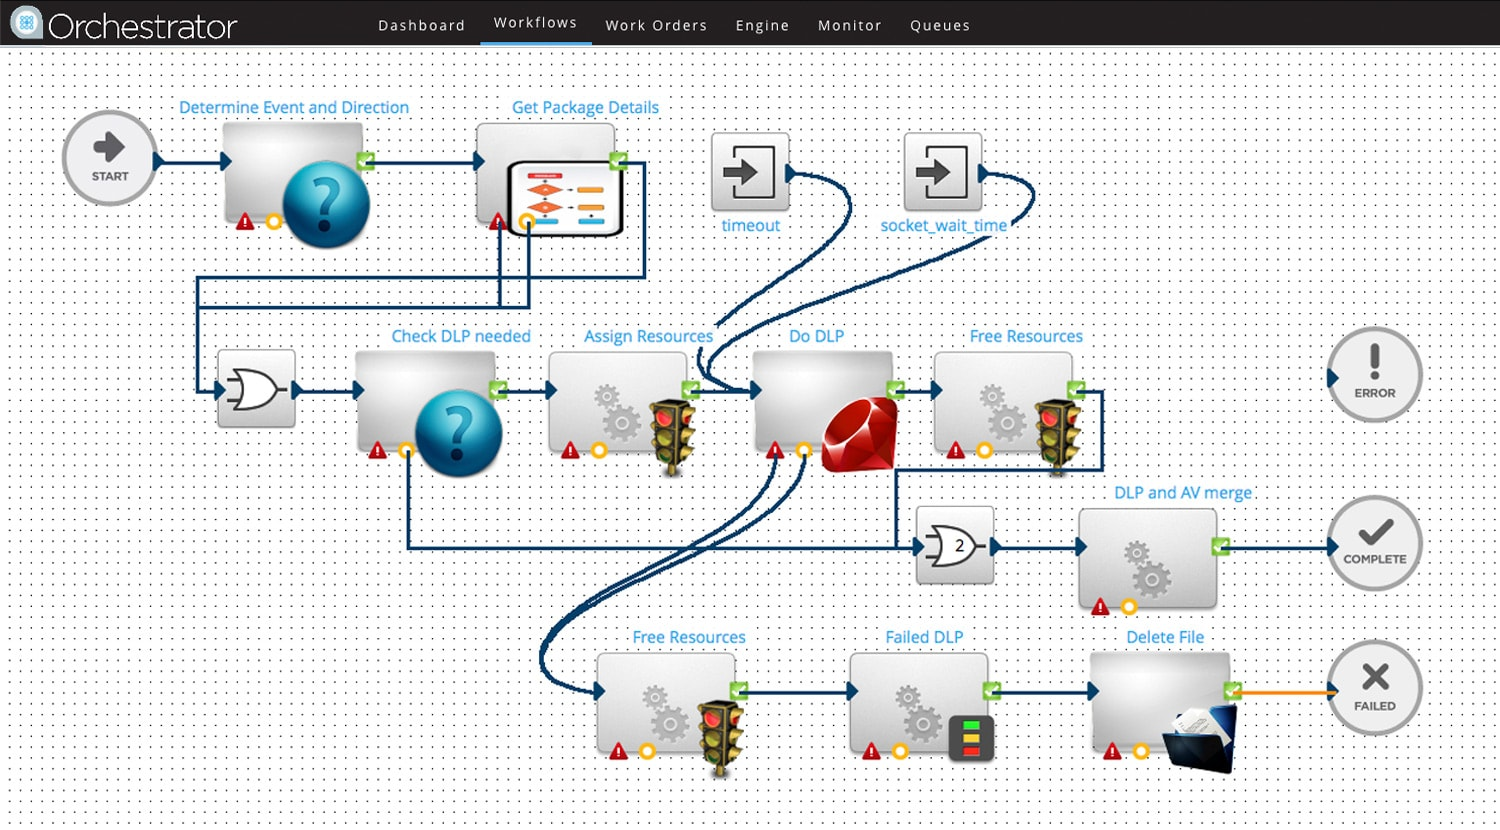 Screenshot showing how to automate quality control and anti-virus scans using Orchestrator